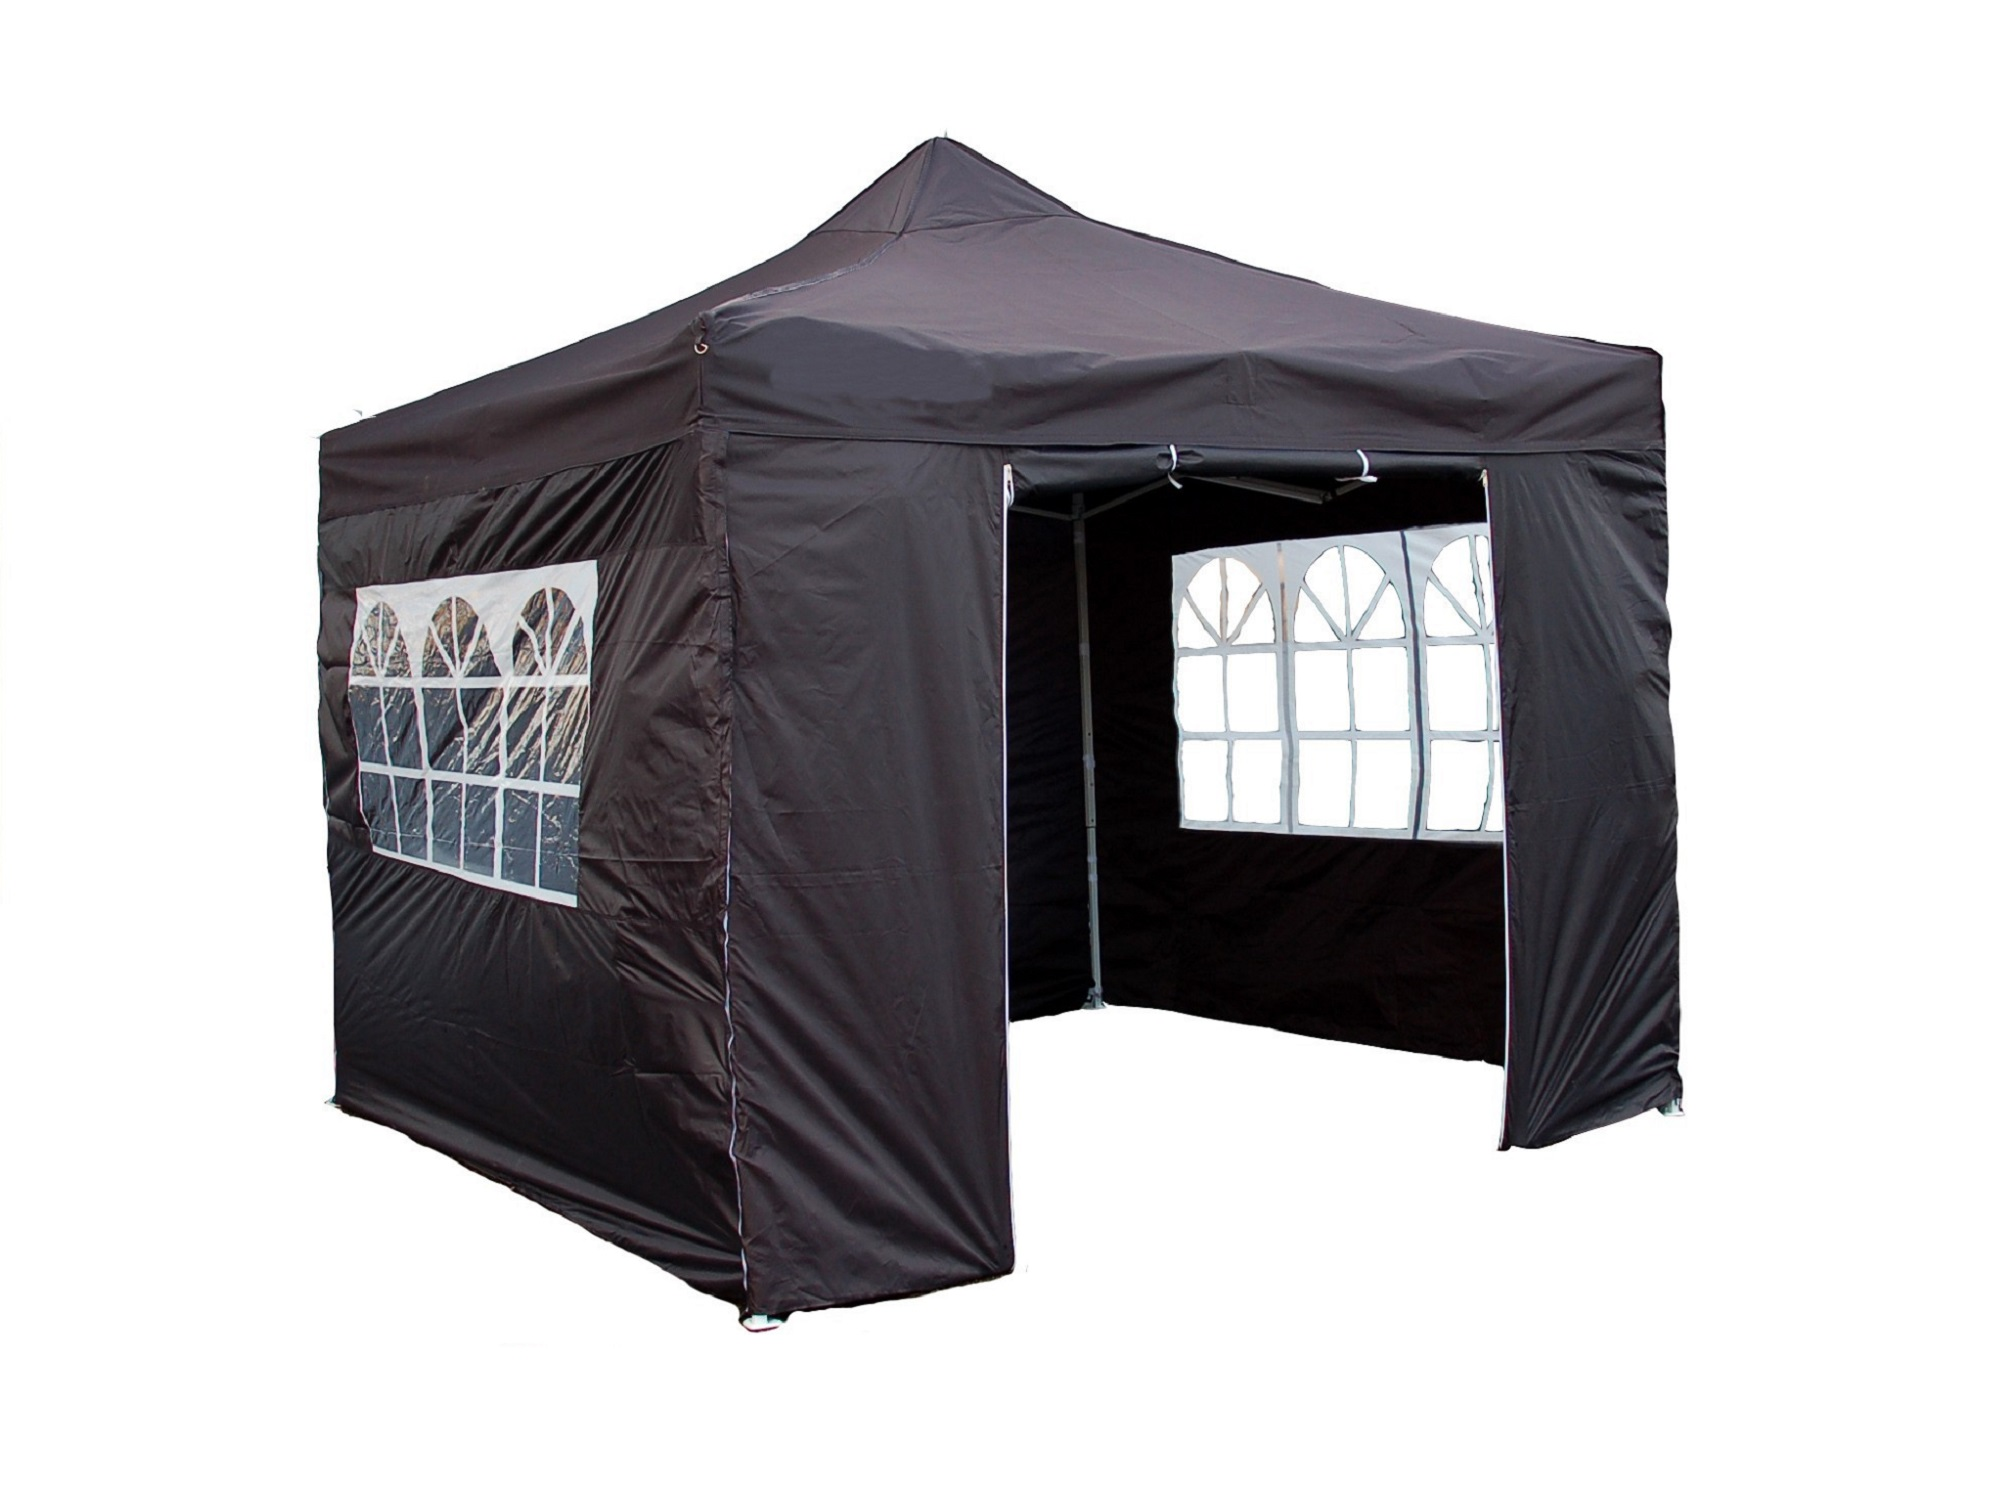 Partytent 3x3 antraciet fleming markelo